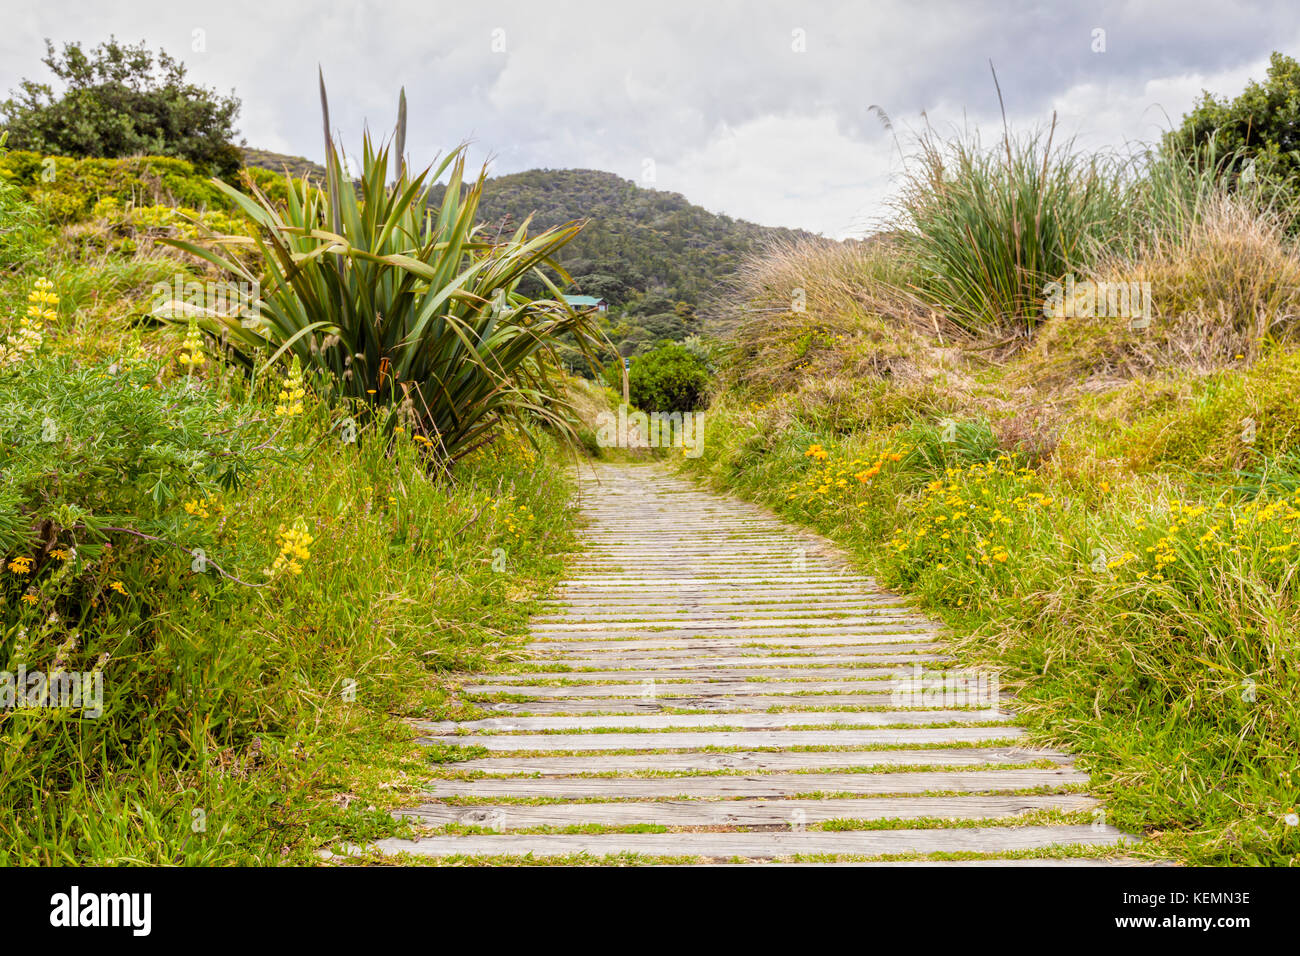 Boardwalk through vegetation covered sand dunes, Piha, Auckland, New Zealand, on a soft light day. - Stock Image